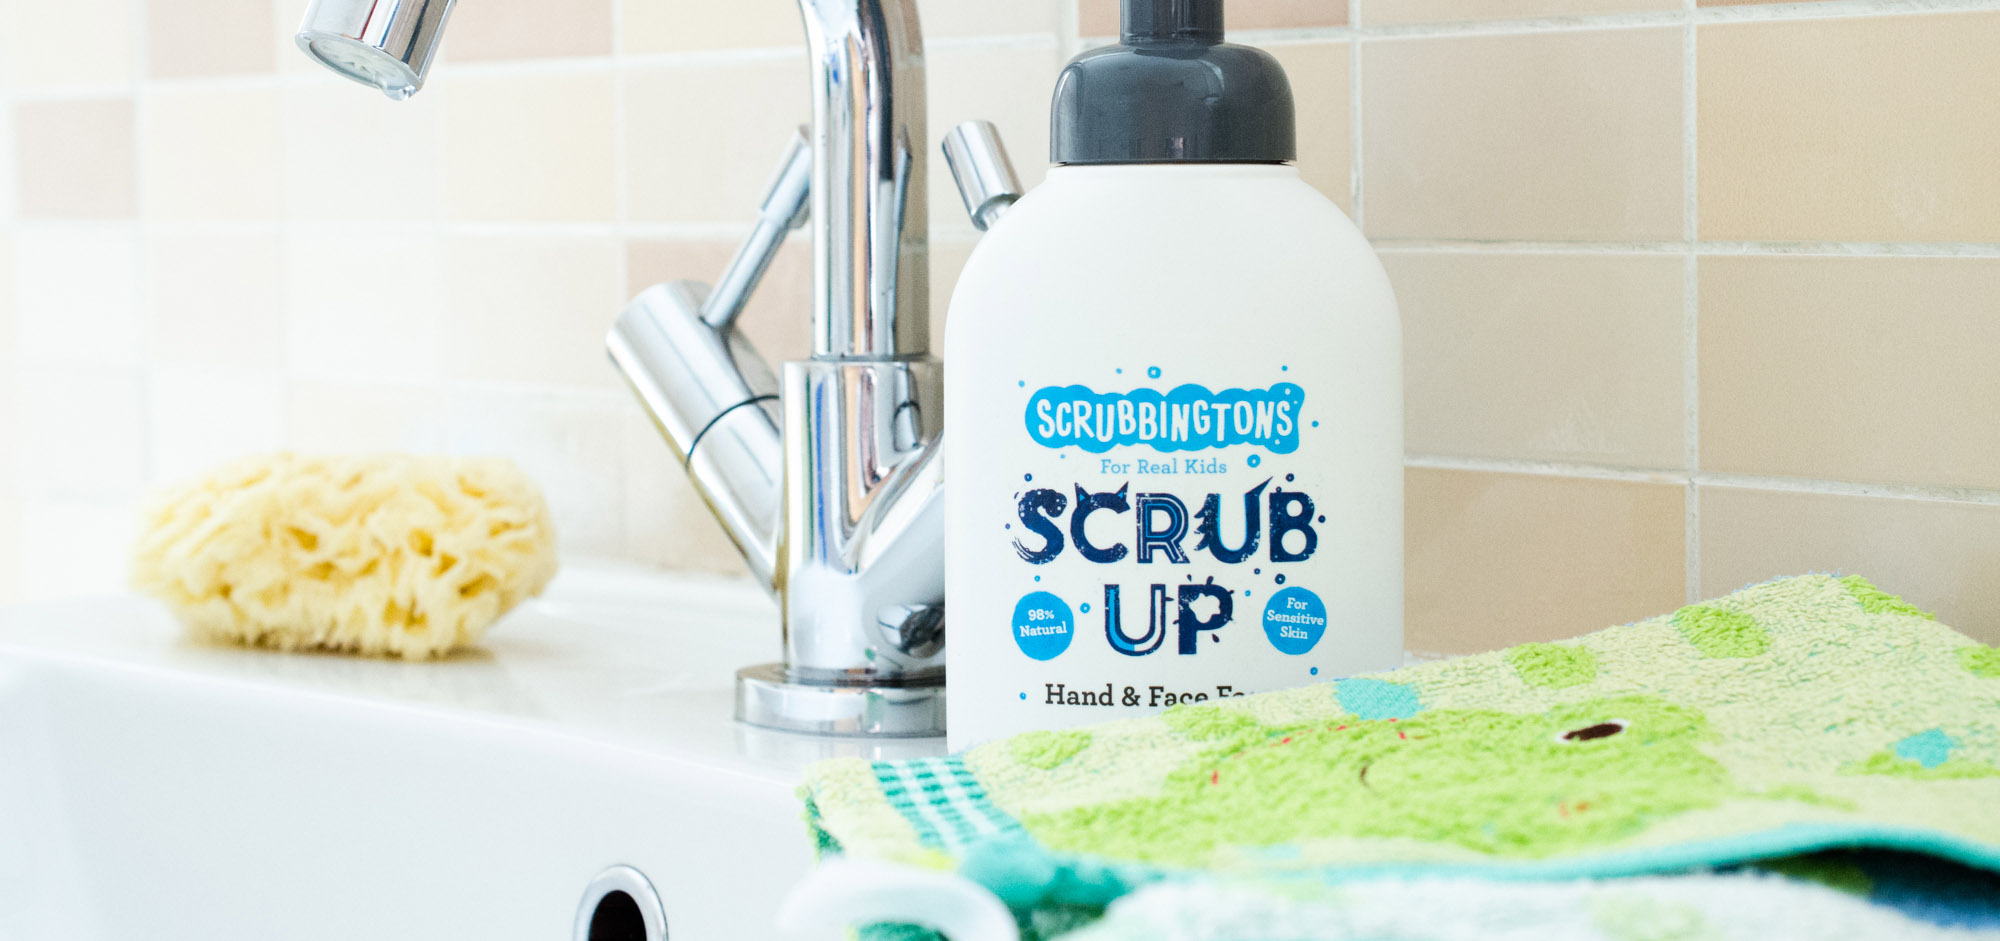 Scrubbingtons Hand & Face Foam